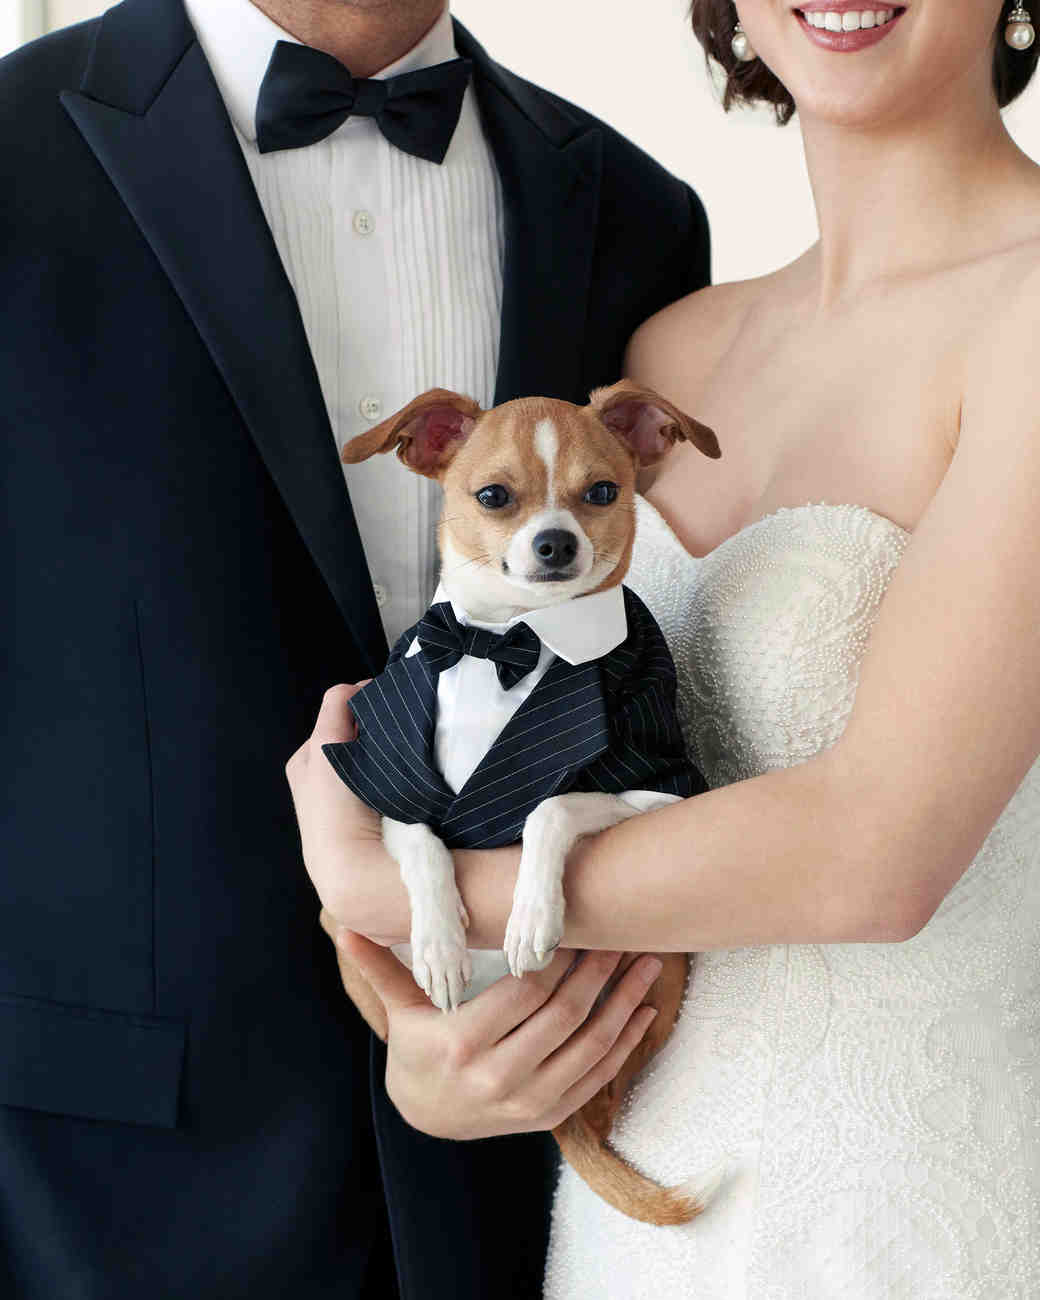 Dogs Can Get Aisle-Ready With the Launch of Martha Stewart Pets' Wedding Finery